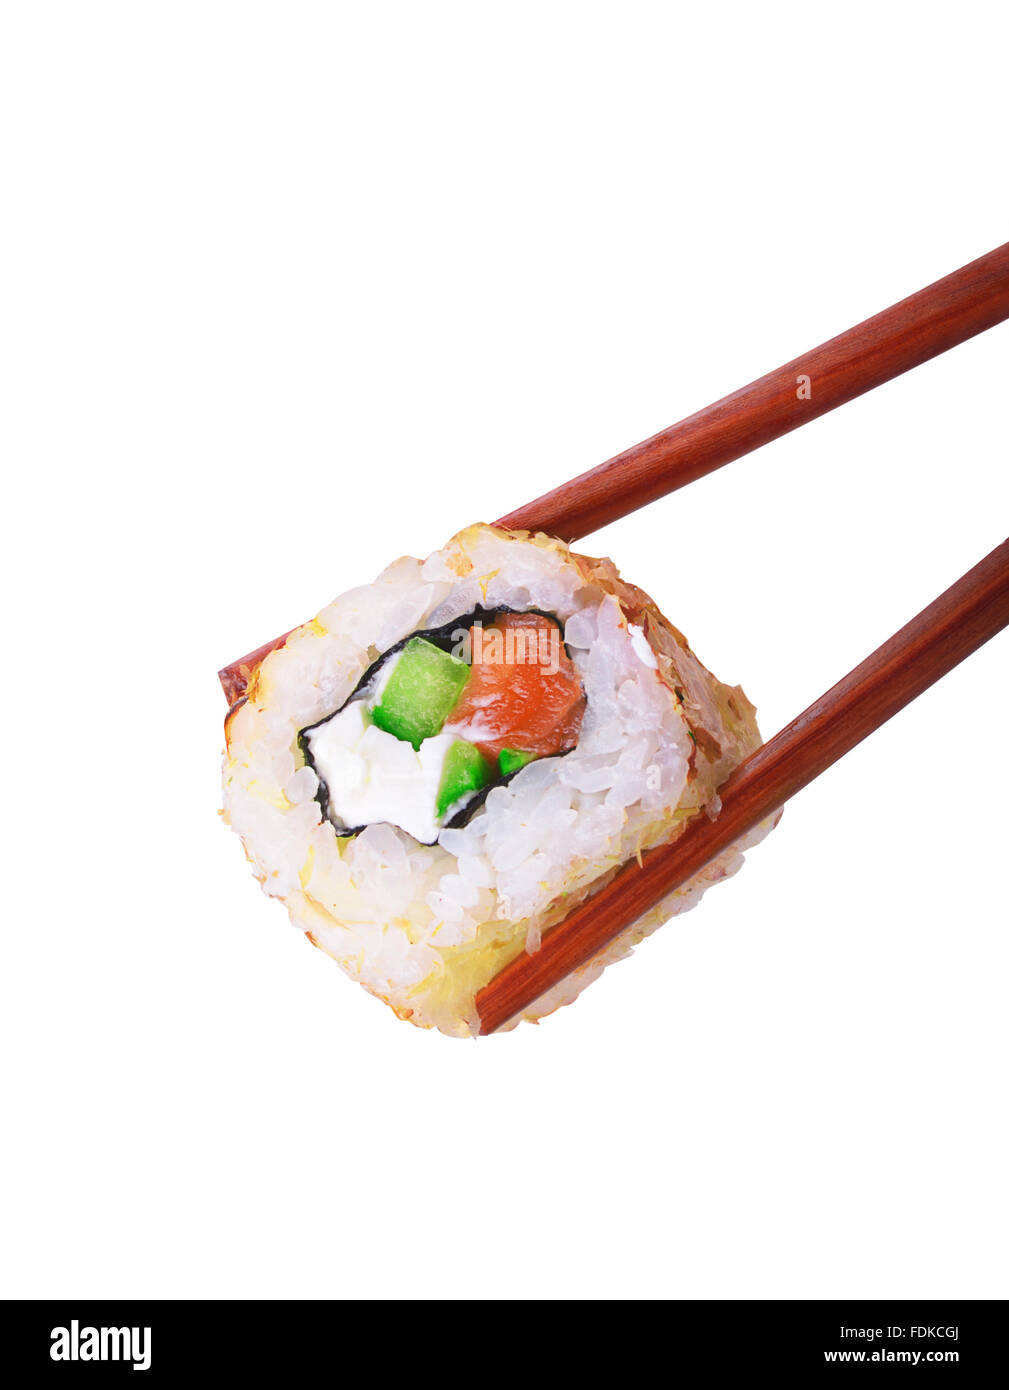 Sushi roll with chopsticks isolated over white background - Stock Image